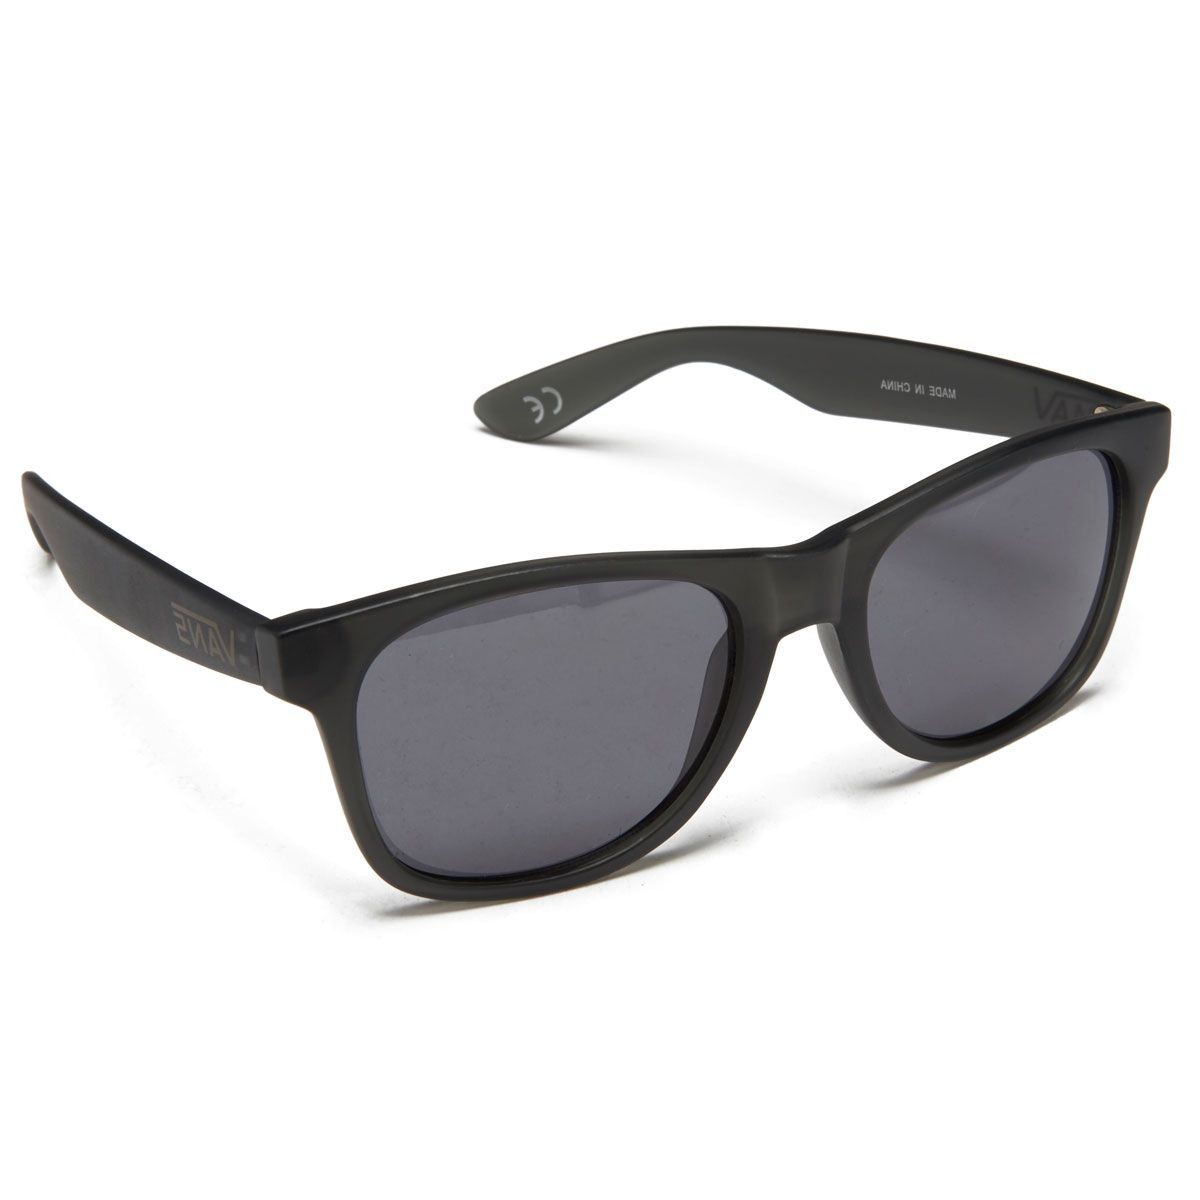 Vans Spicoli 4 Sunglasses - Black Frosted Translucent 94539b3aa7